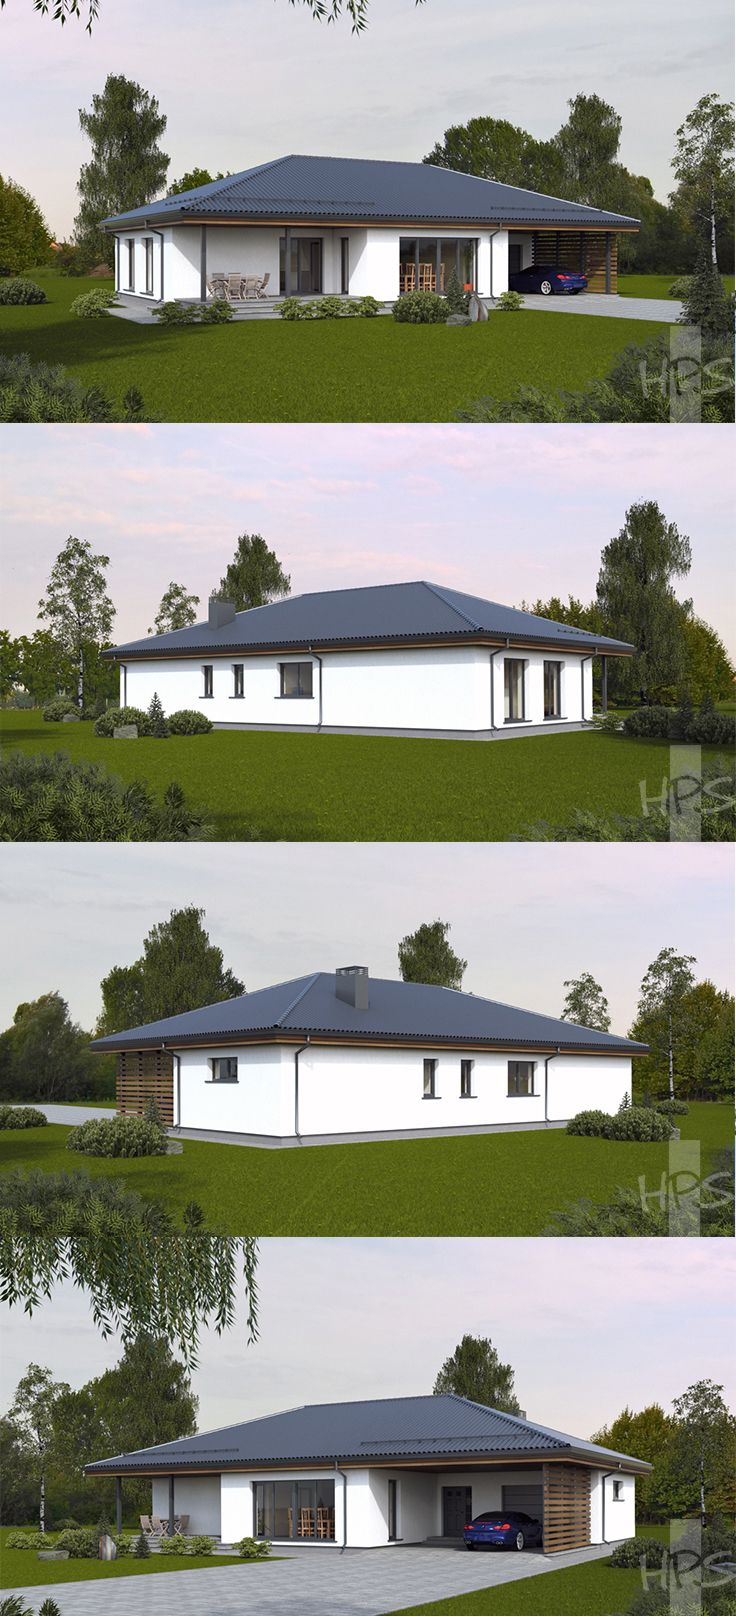 The project of a house for a hunter in the Moscow region